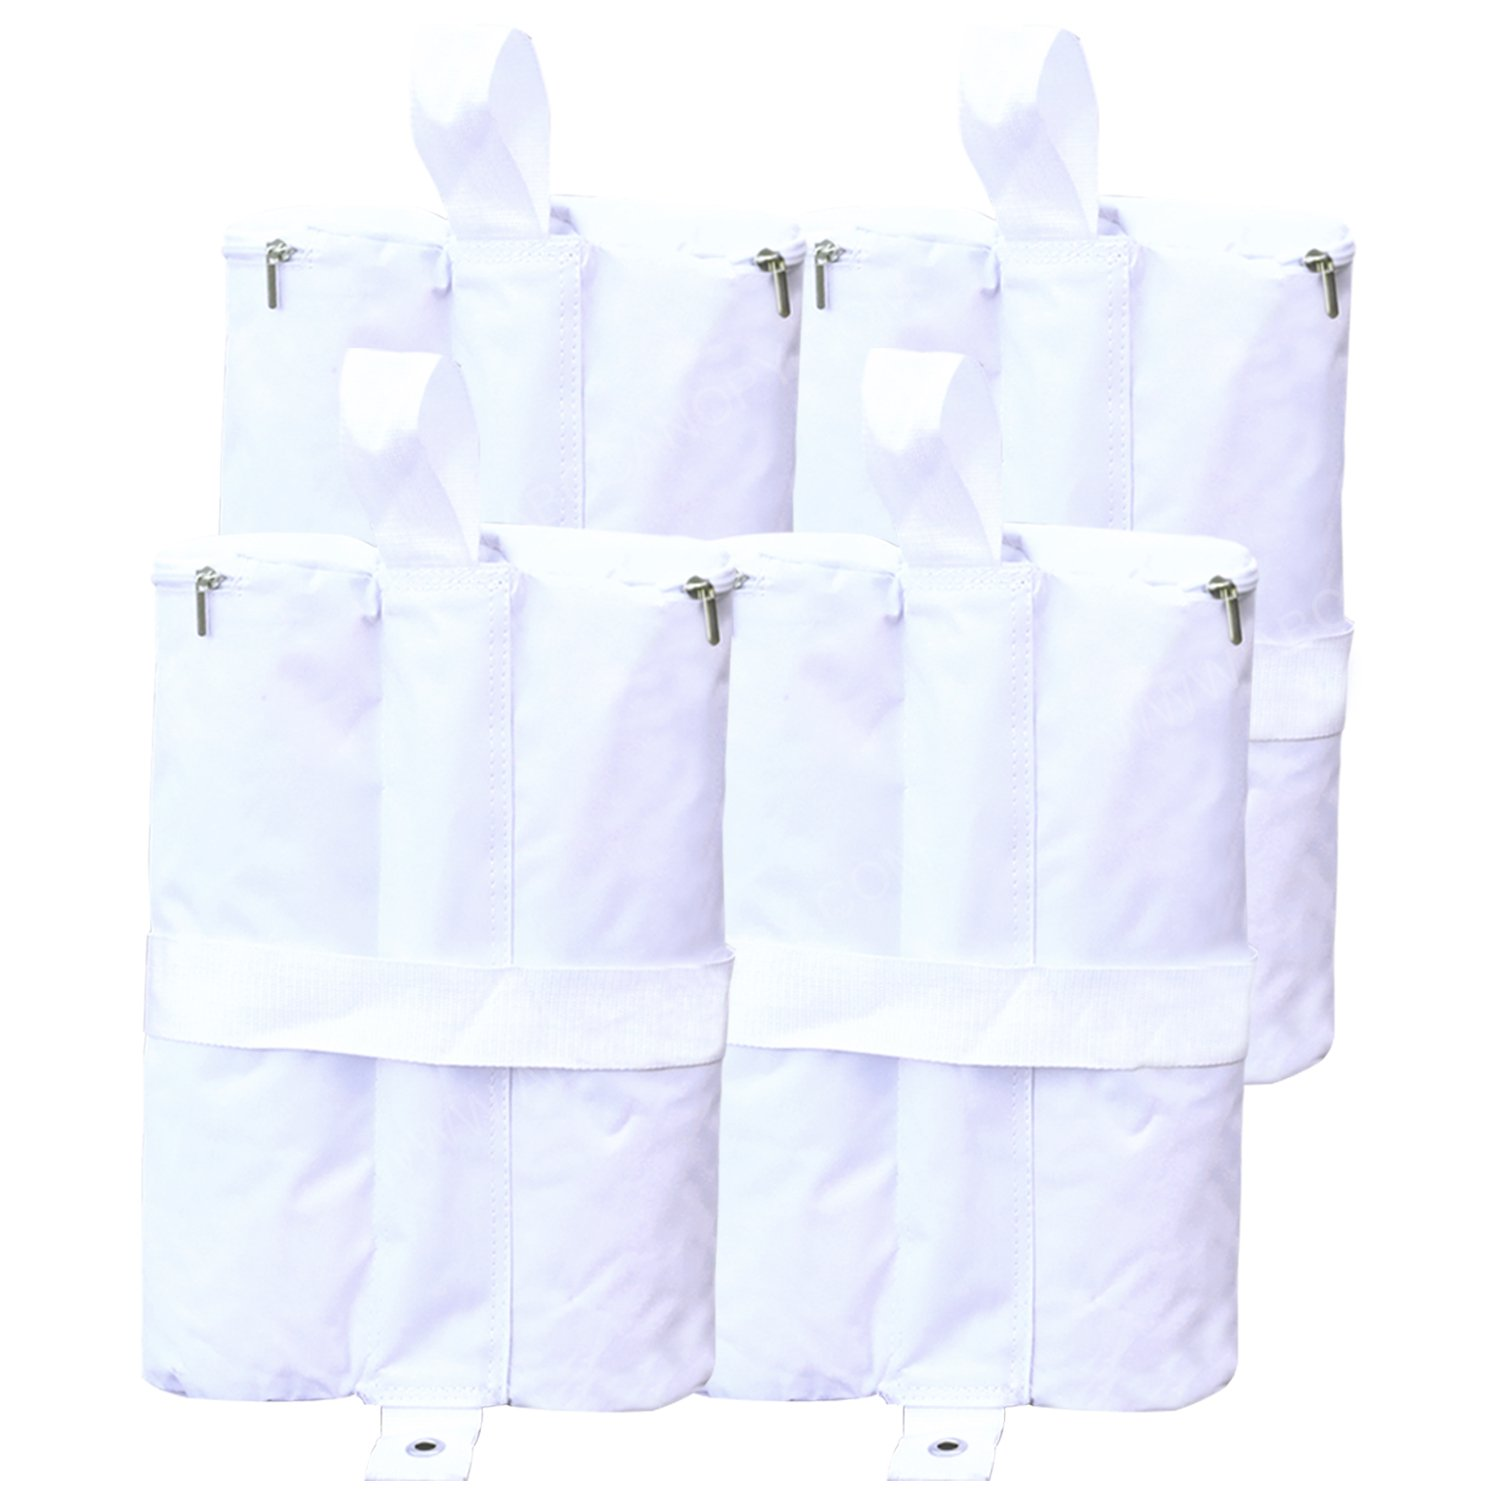 ABCCANOPY Outdoor Pop Up Canopy Tent Gazebo Weight Sand Bag Anchor Kit-4 Pack (Double, White)